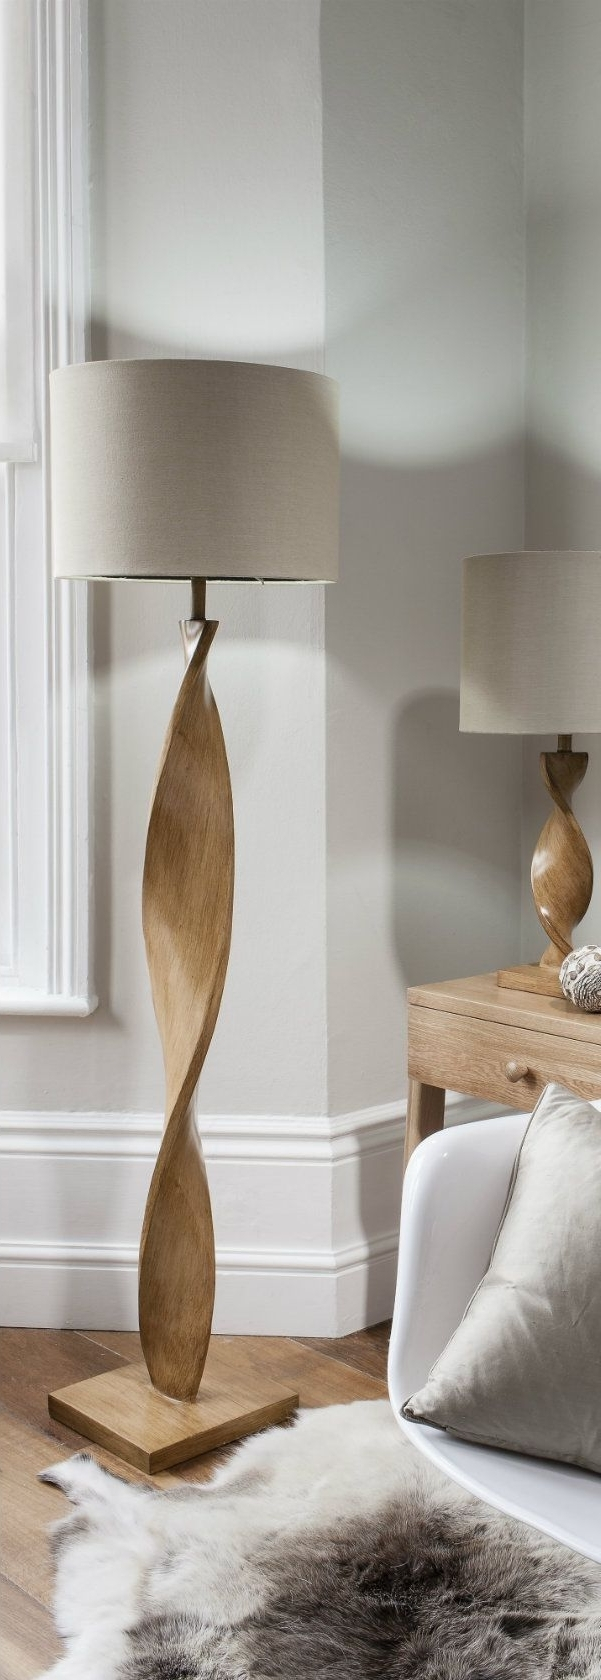 Most Up To Date Living Room Lamp Ideas – Vitaminshoppe – Vitaminshoppe Within Houzz Living Room Table Lamps (View 11 of 15)